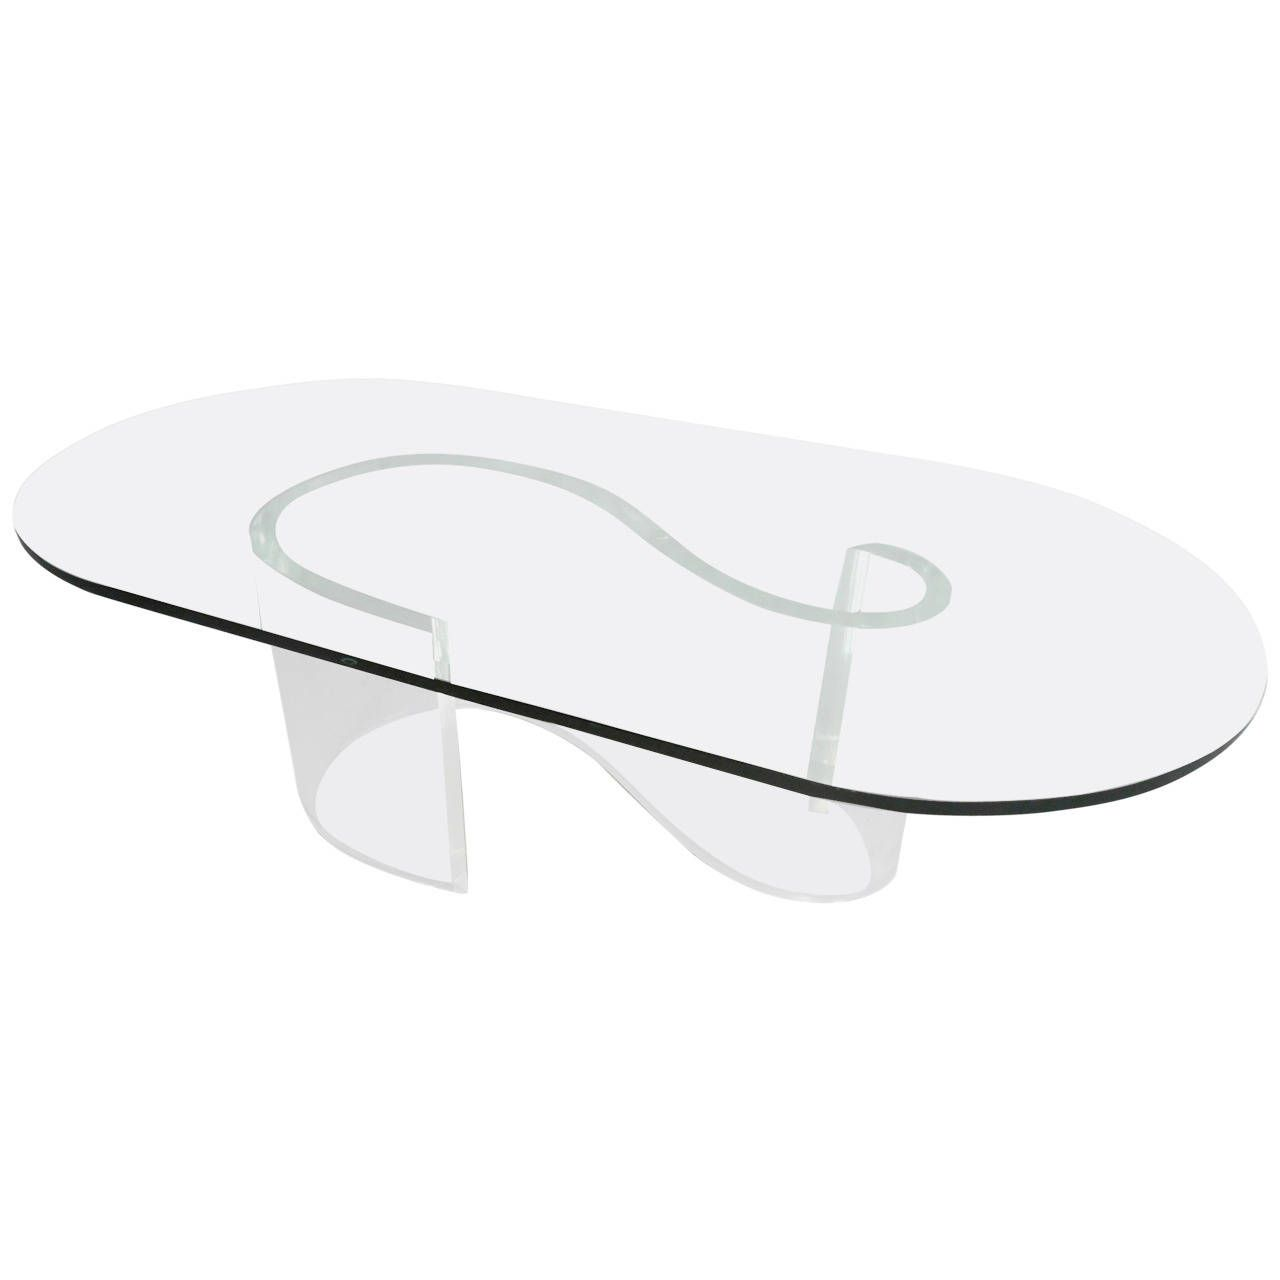 6e468e2d63d8 Mid-Century Modern S-Shape Lucite Coffee Table with Beveled Glass Top